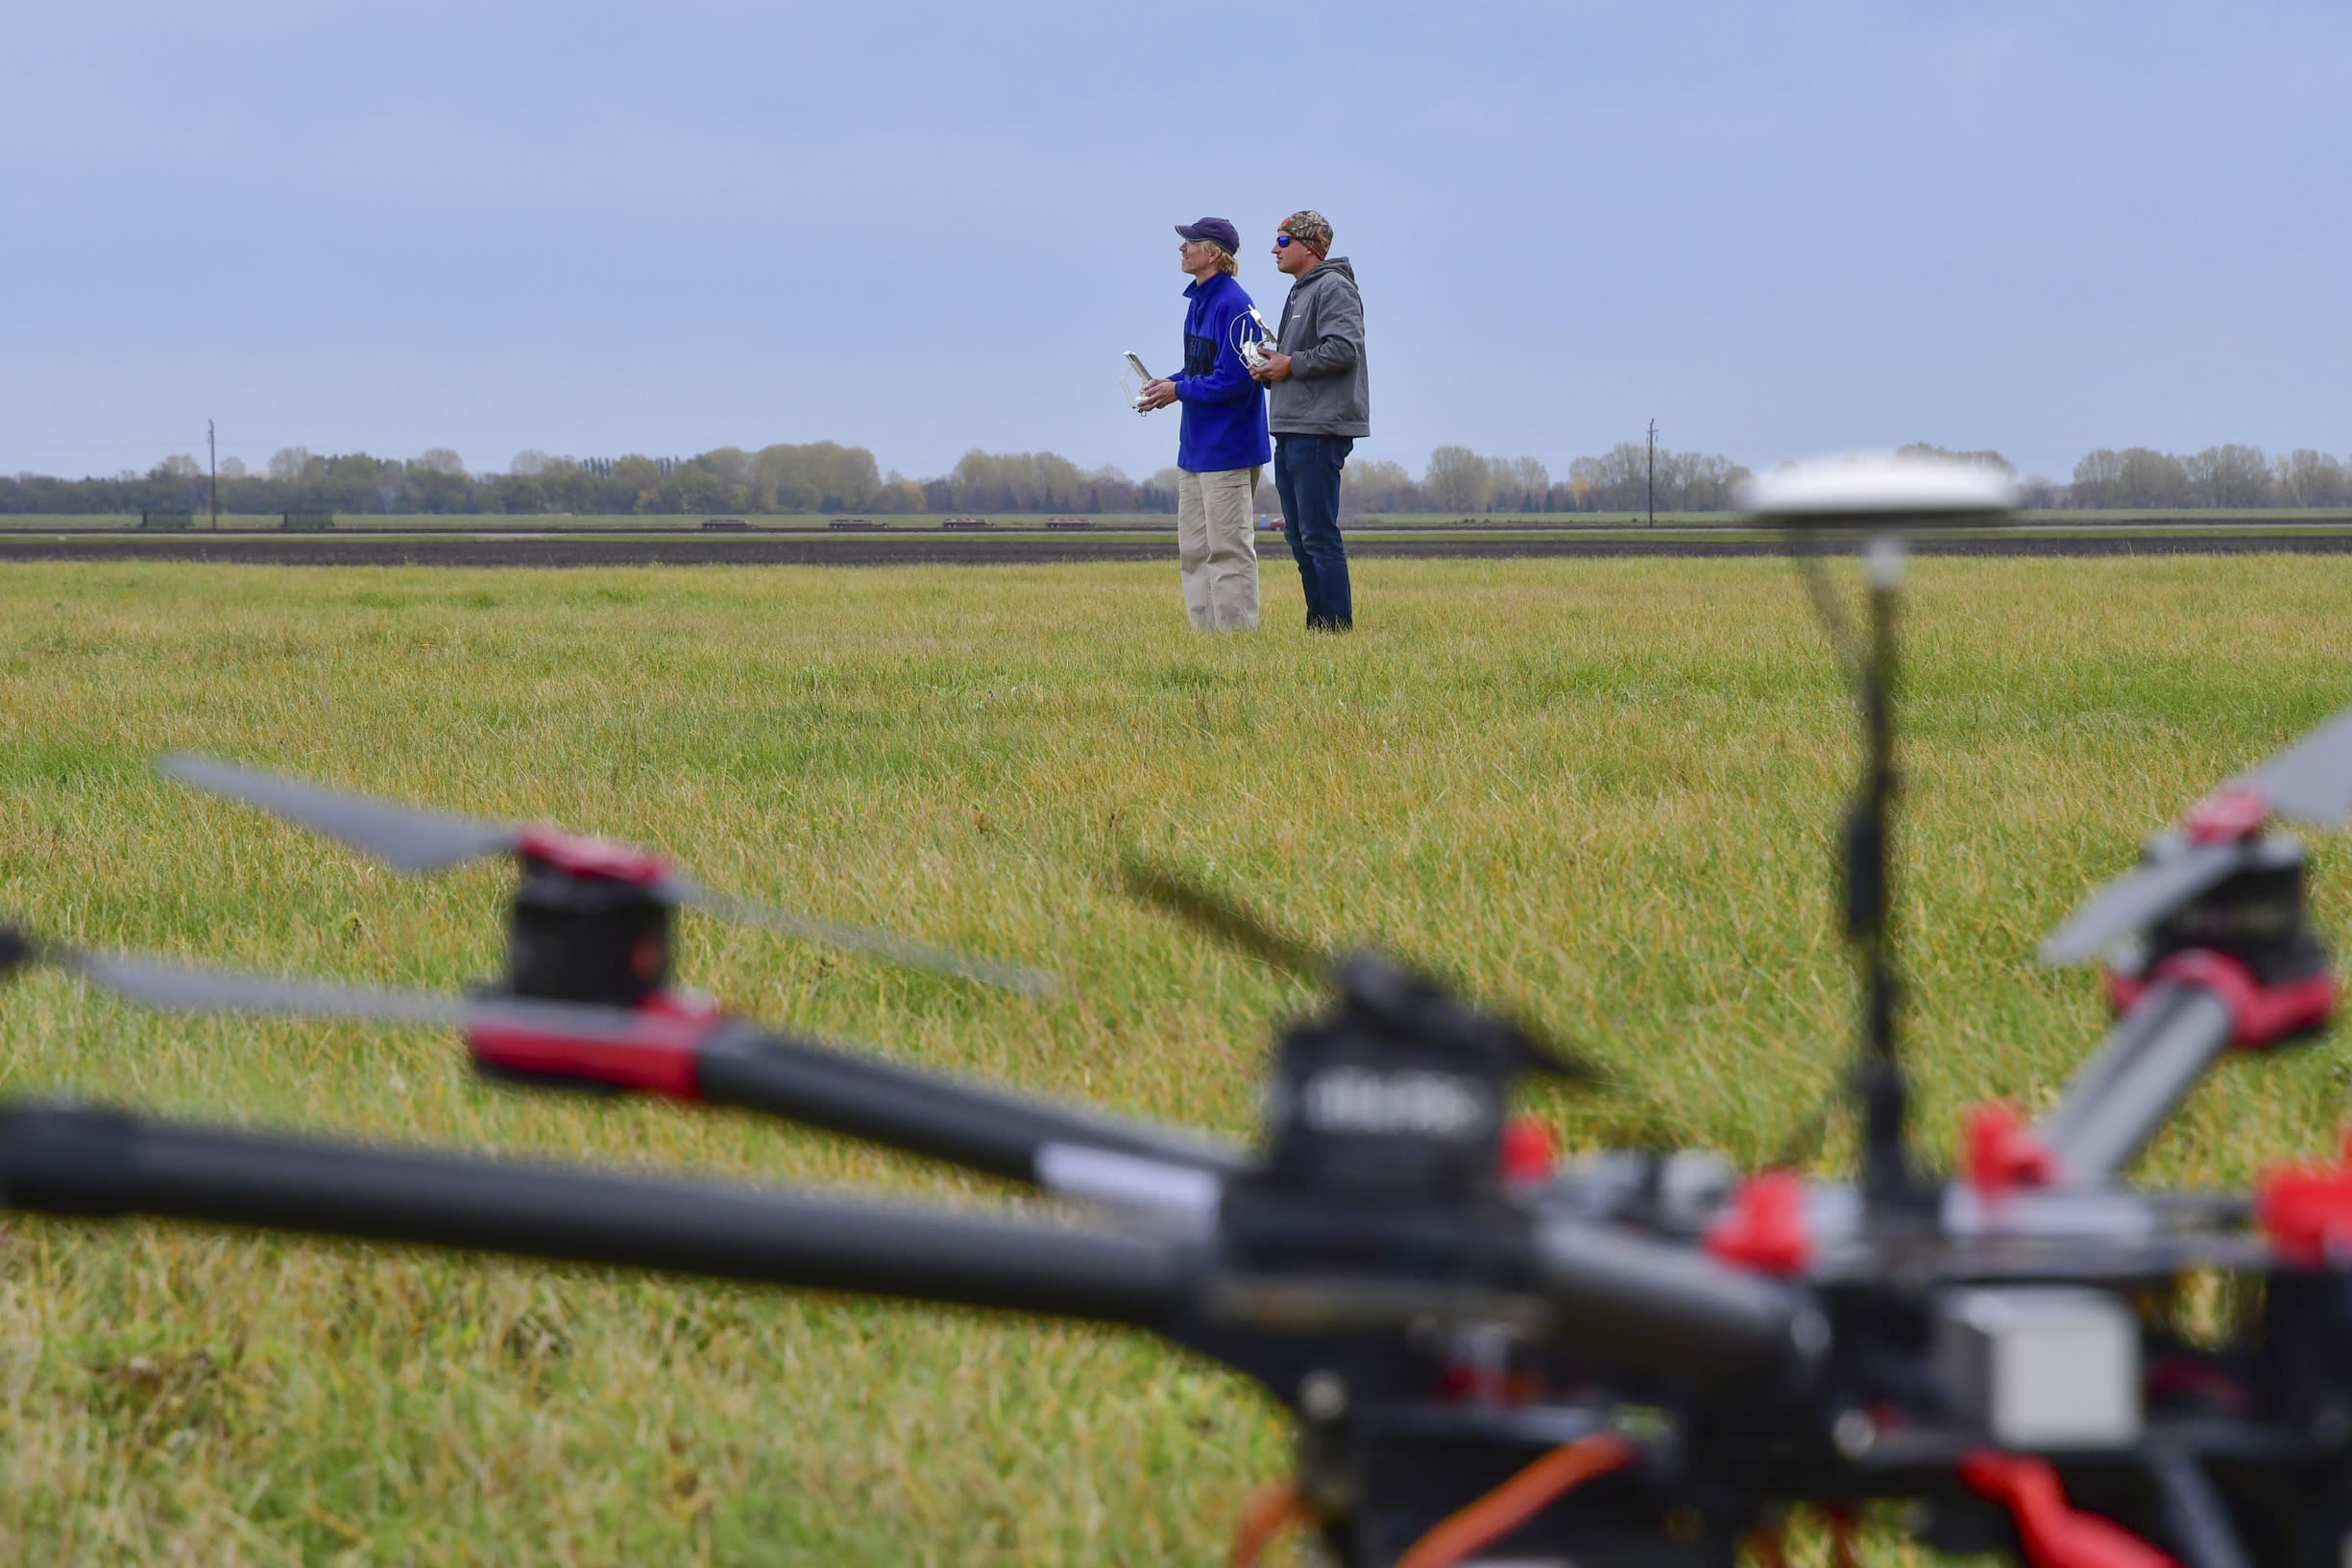 Drone schools look to woo younger pilots for commercial jobs